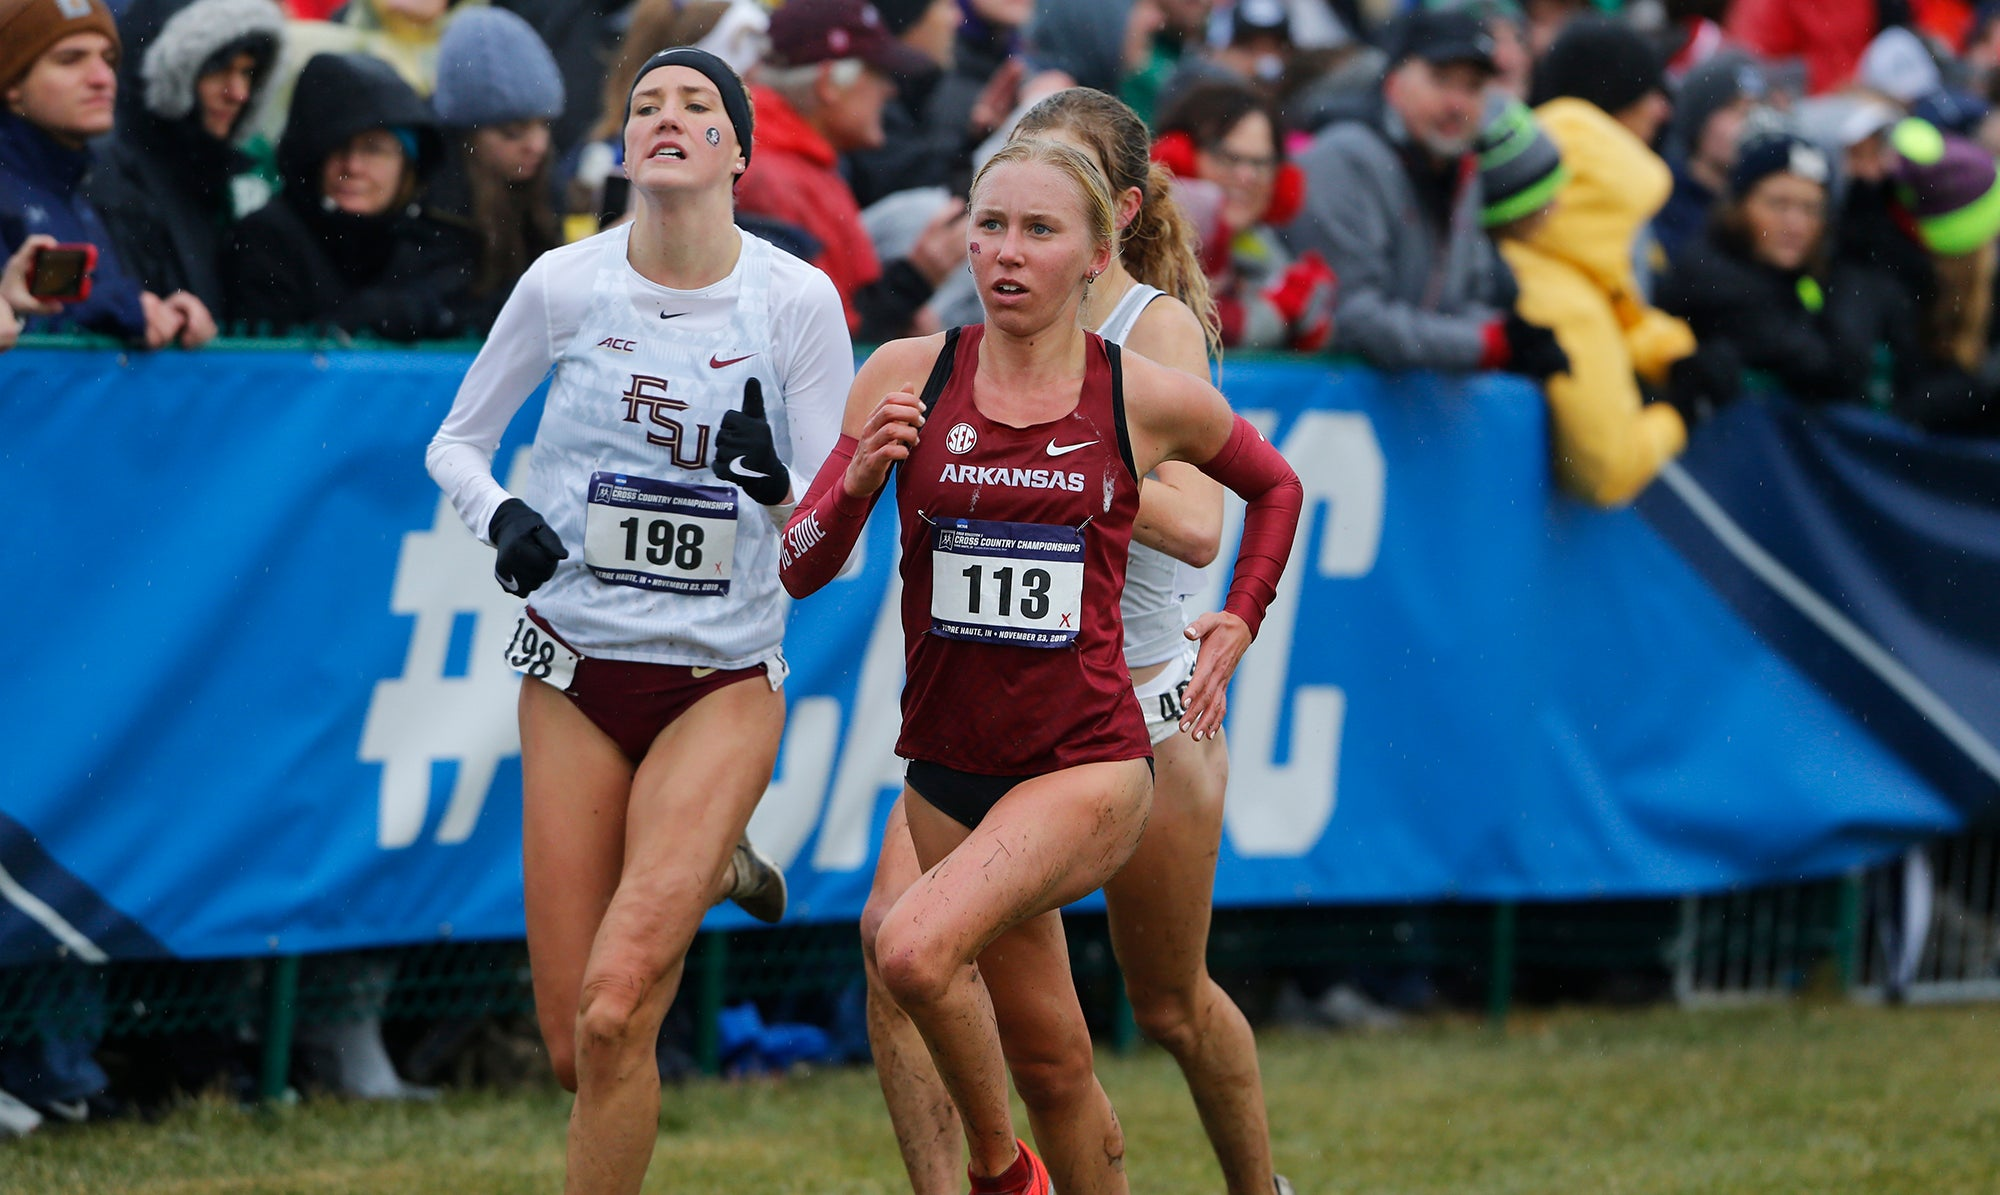 Arkansas women's team NCAA XC